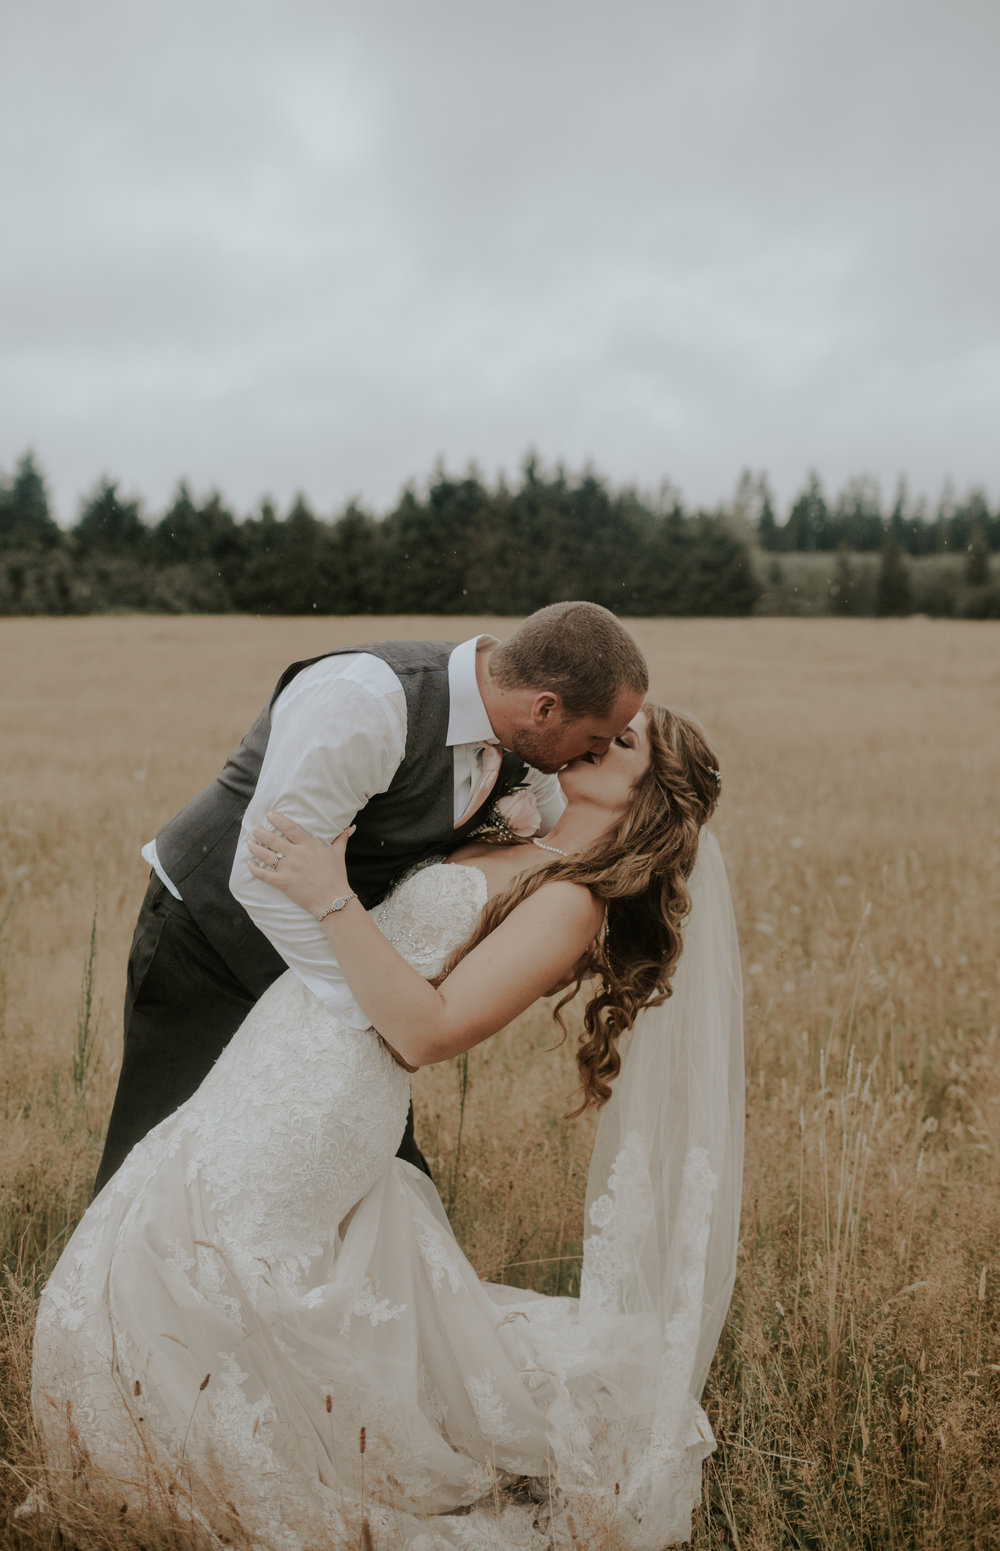 Olympic-Peninsula-Wedding-Photographer-PNW-Forks-Port-Angeles-Kayla-Dawn-Photography-engagement-Olympic-National-Park-148.jpg